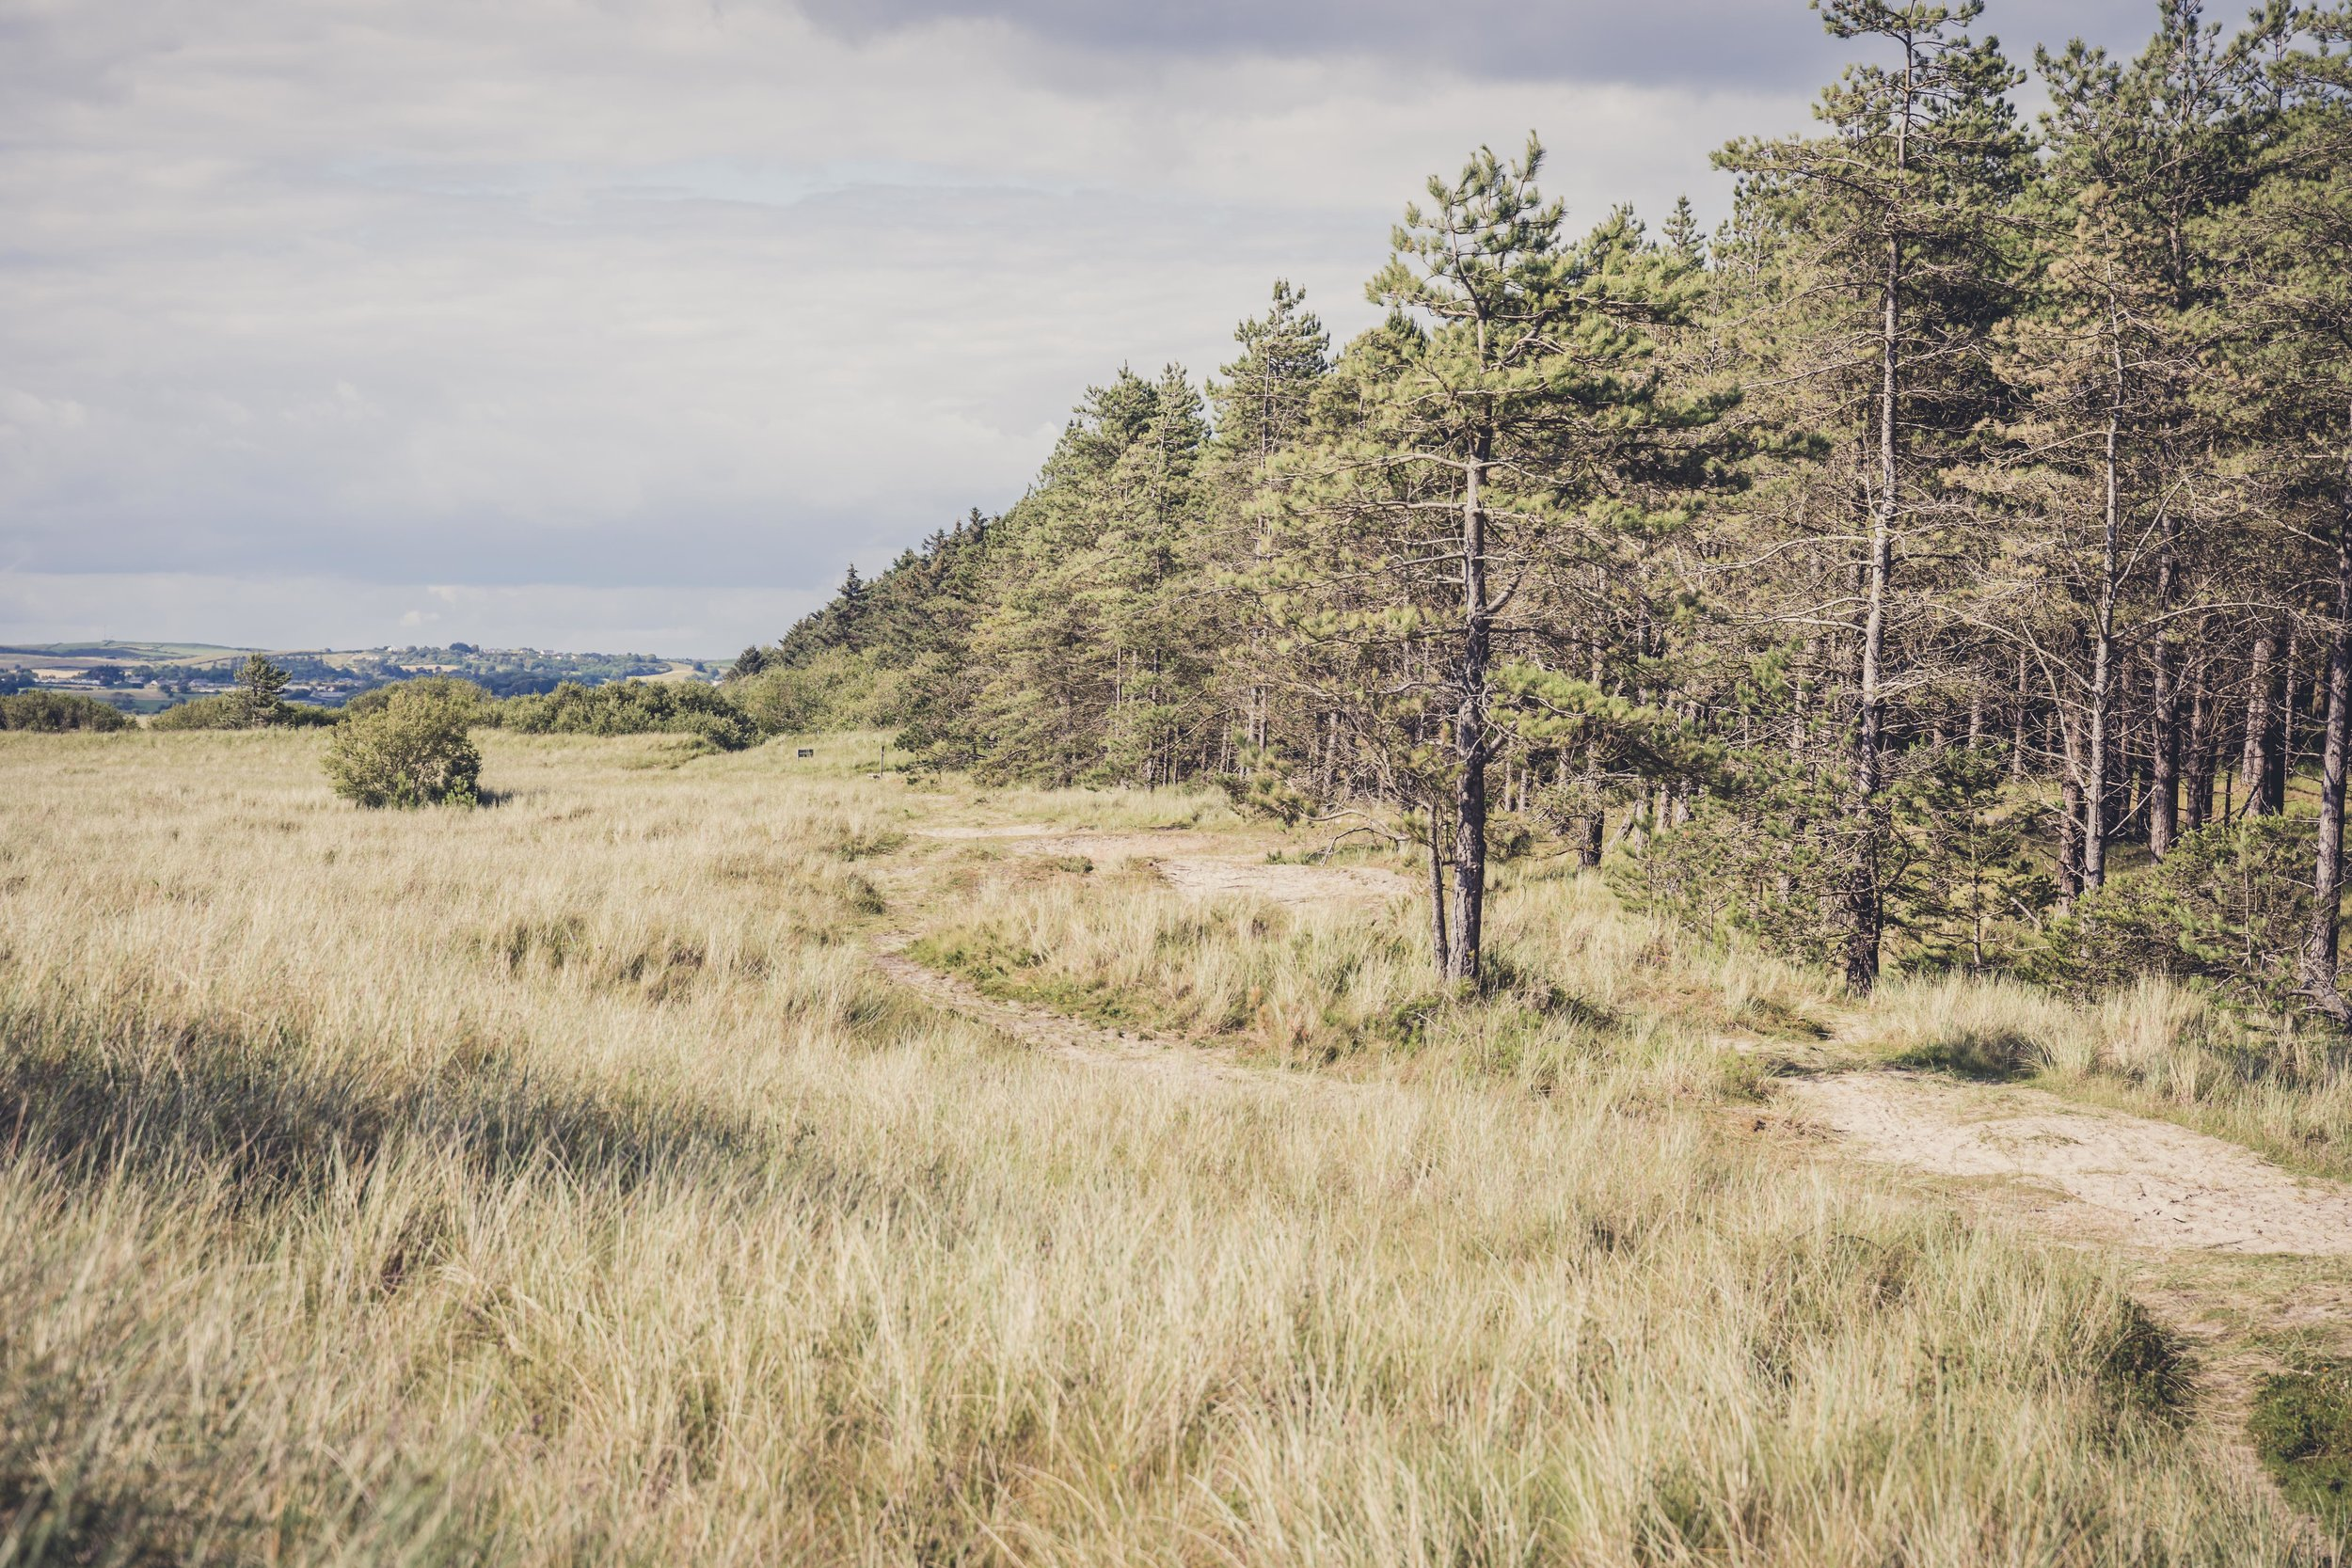 The Raven forest and beach wexford ireland tree line.jpg